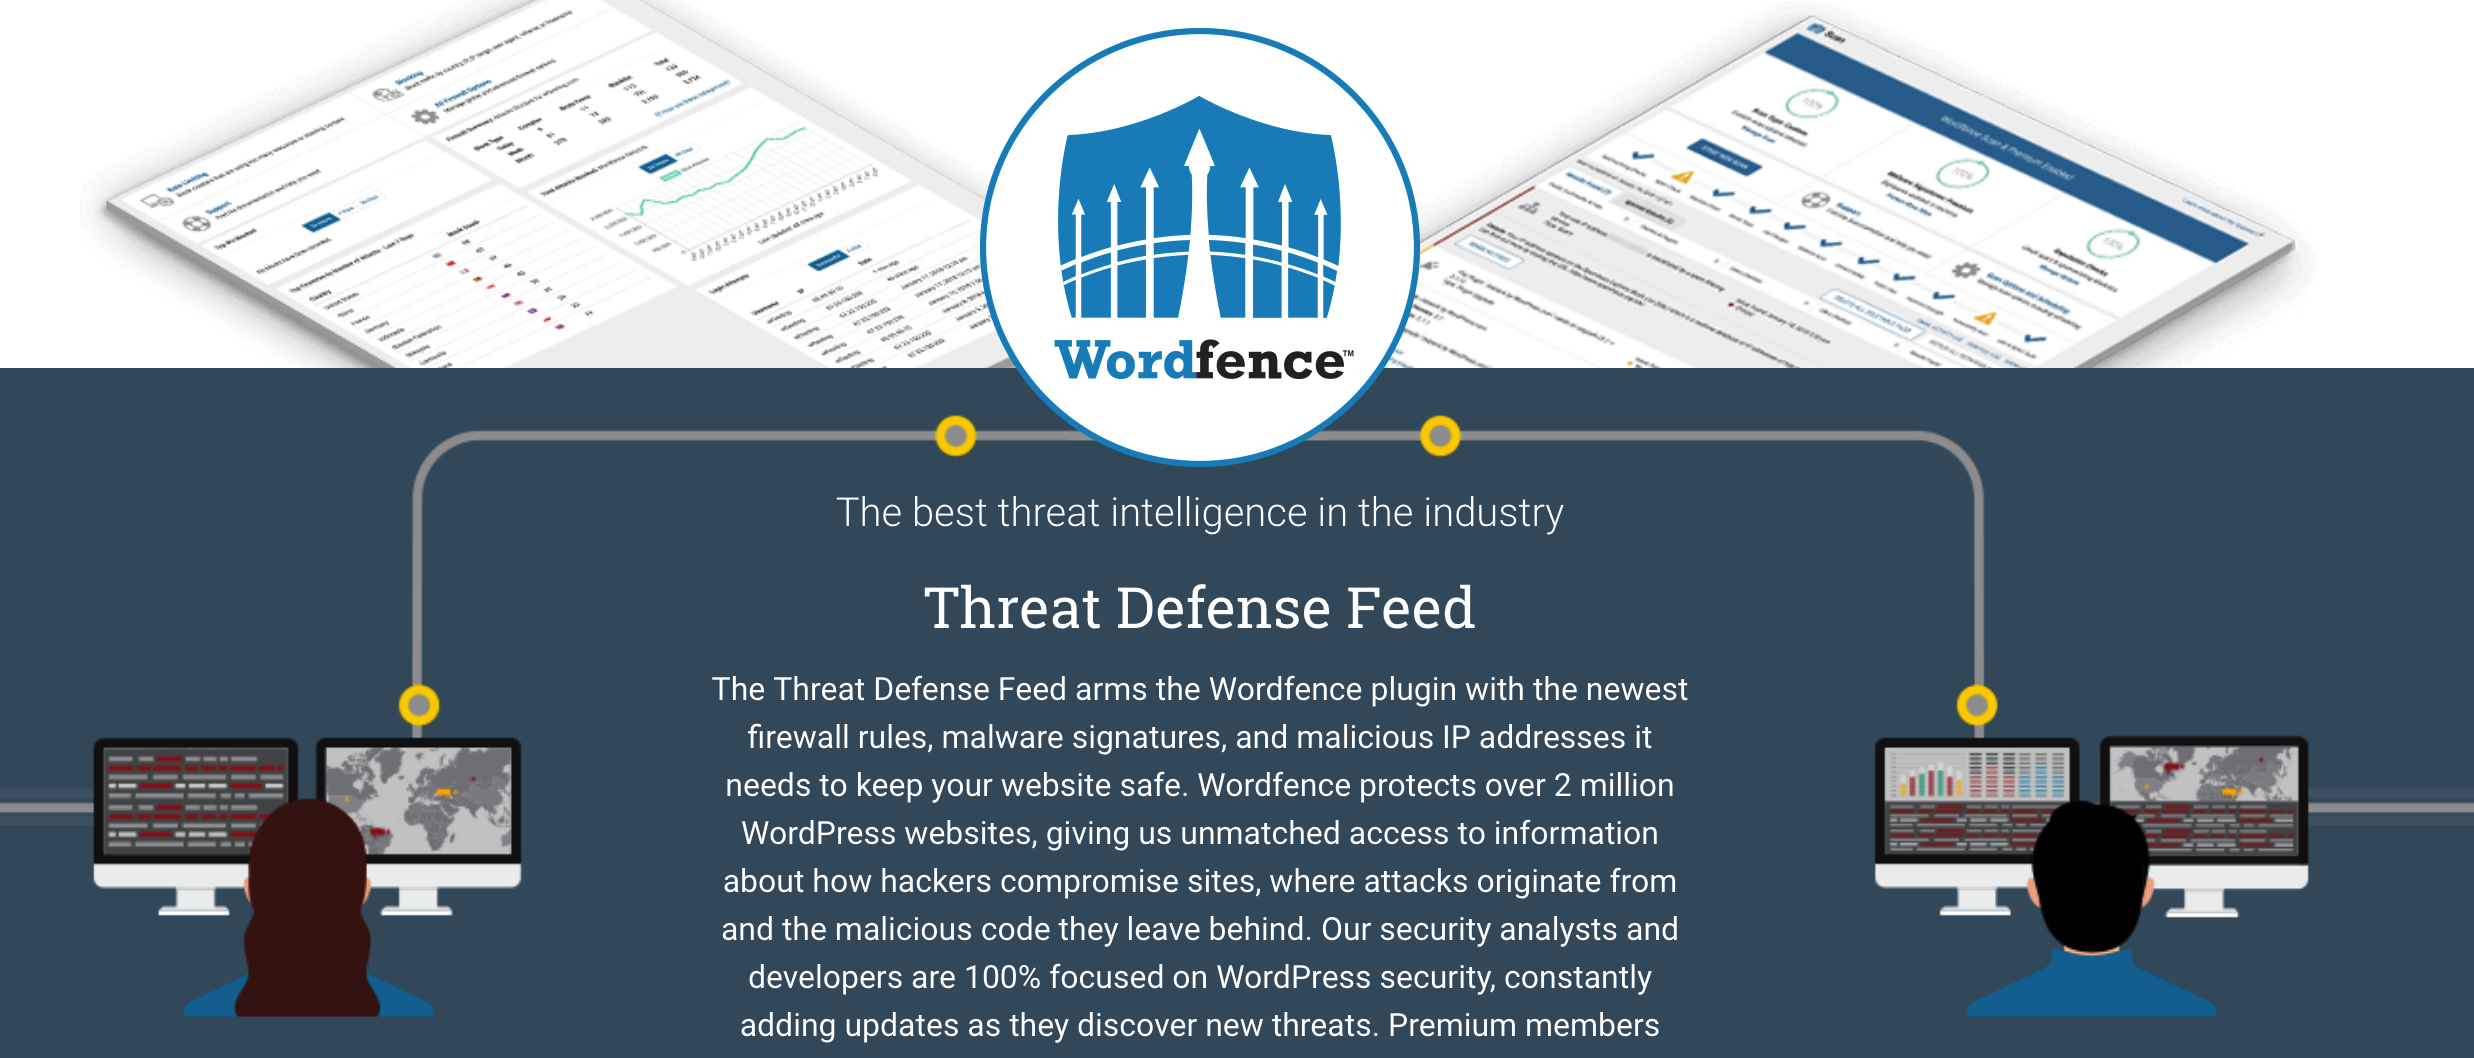 Screenshot-2019-07-20-at-4.42.22-PM 17 Best WordPress Security & Malware Protection Plugins in 2020 WPDev News  WordPress Plugins|best security plugin for wordpress|best wordpress security|best wordpress security plugin|best wordpress security plugins|WordPress security plugin 2018|WordPress Security Plugins